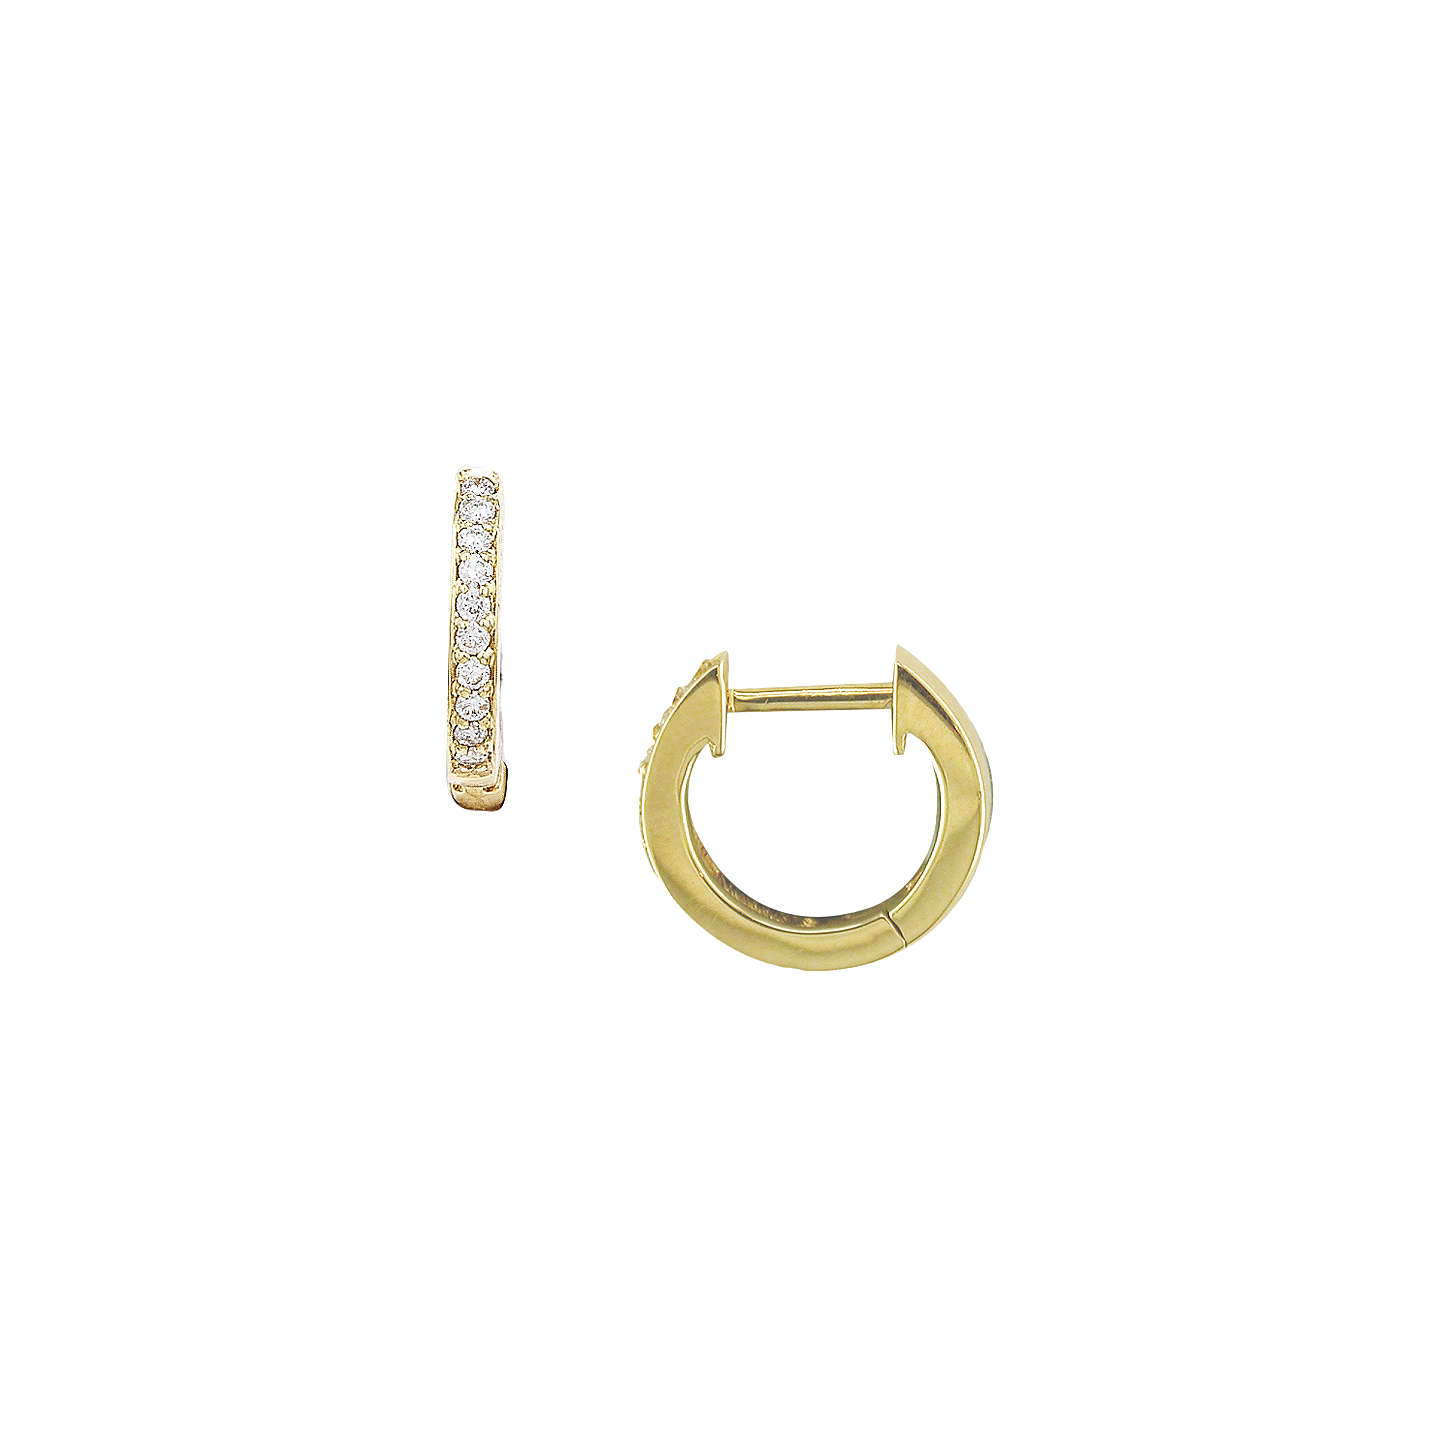 BuyLondon Road 9ct Gold Diamond Demi-Hoop Earrings, Yellow Gold Online at johnlewis.com